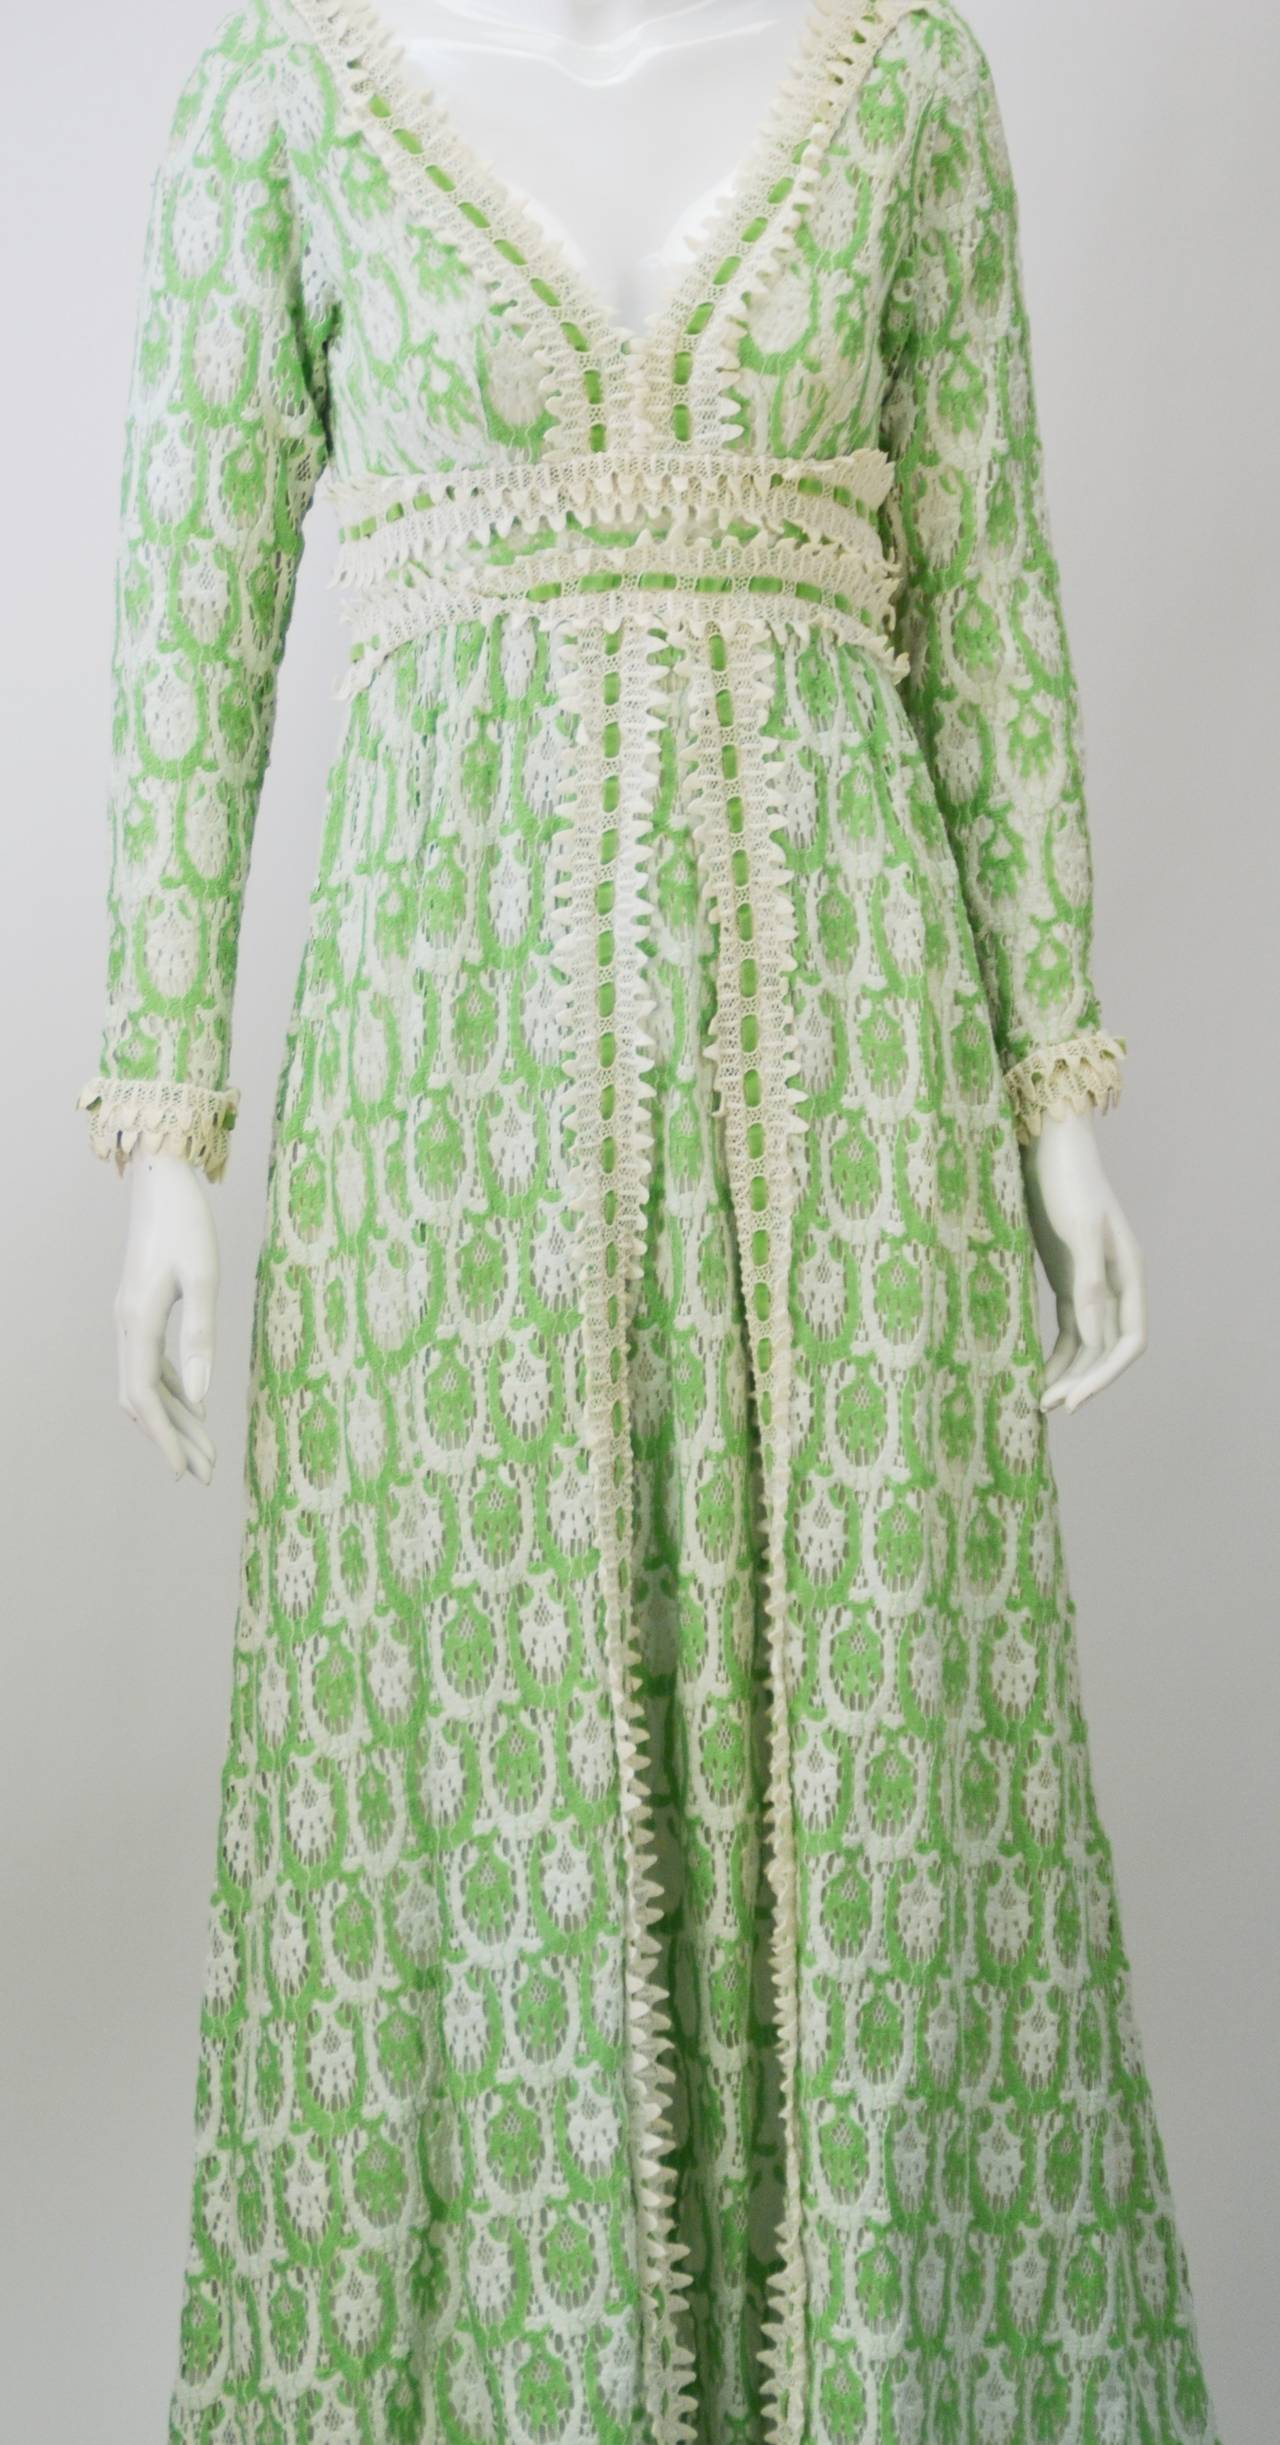 1970s Lillie Rubin Green and White Lace Dress In Good Condition For Sale In Houston, TX